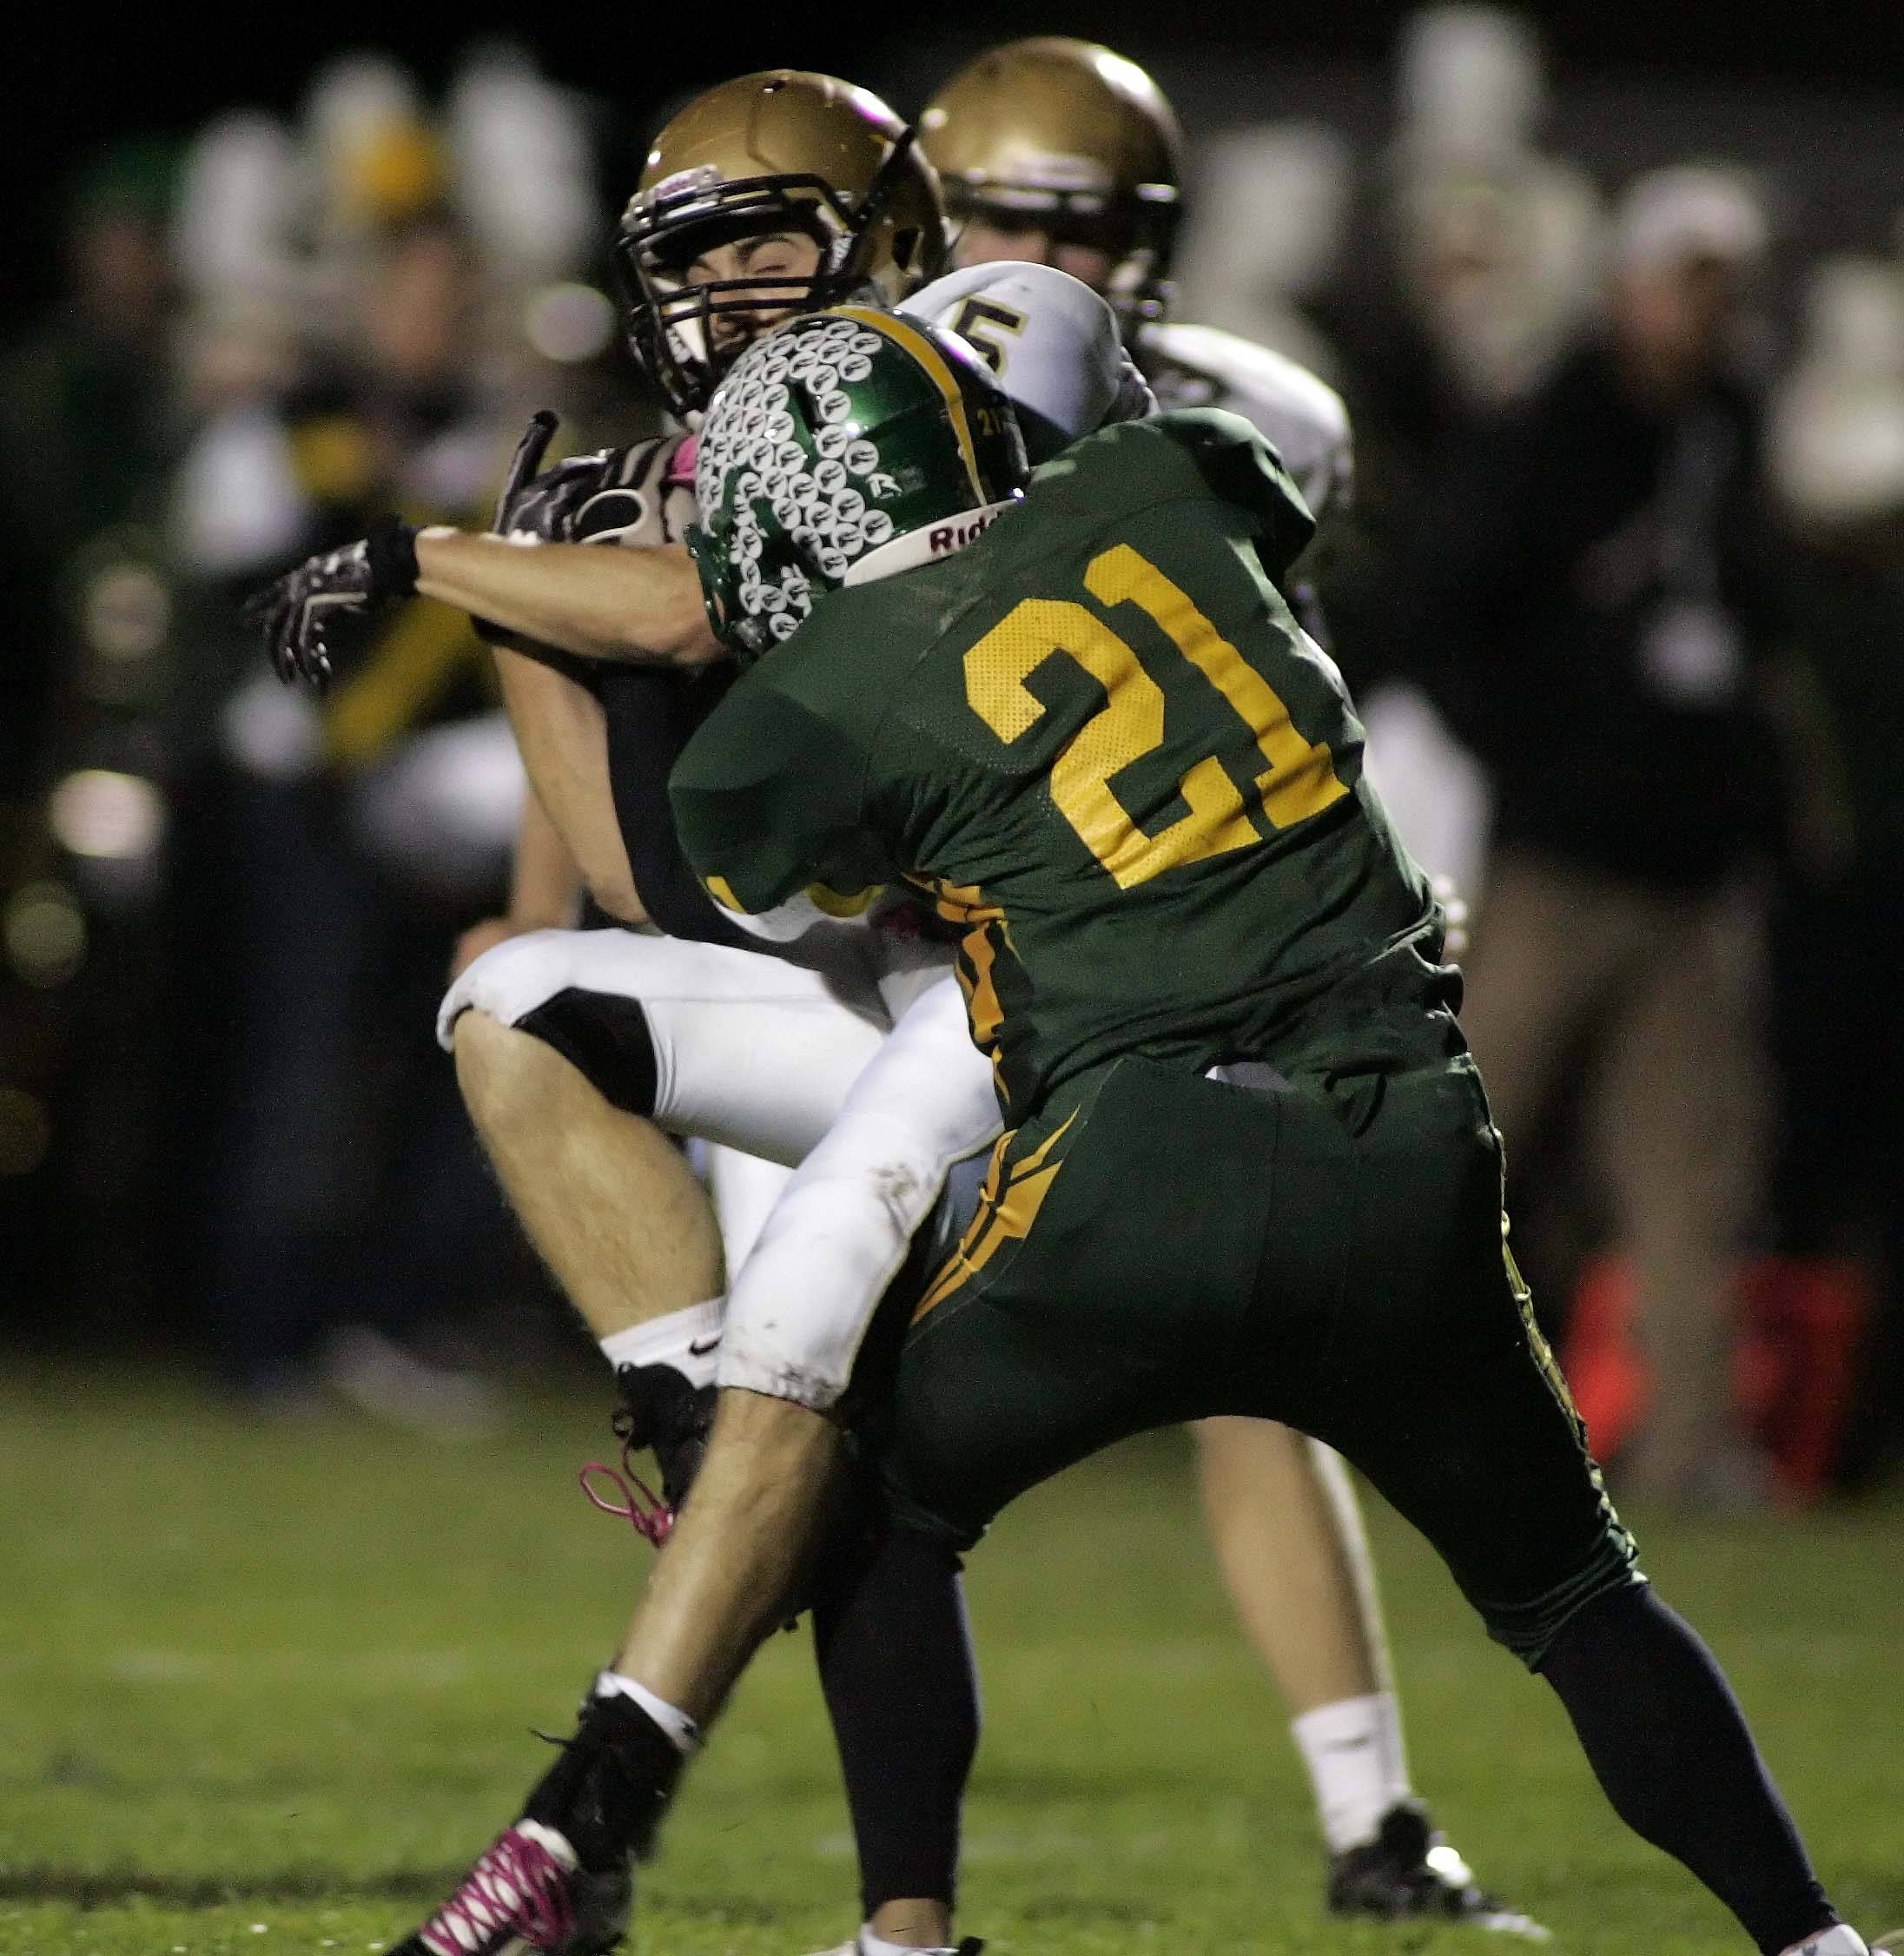 Crystal Lake South senior Brad Walovitch (21) has been a mainstay on offense and defense for the 9-1 Gators this season.